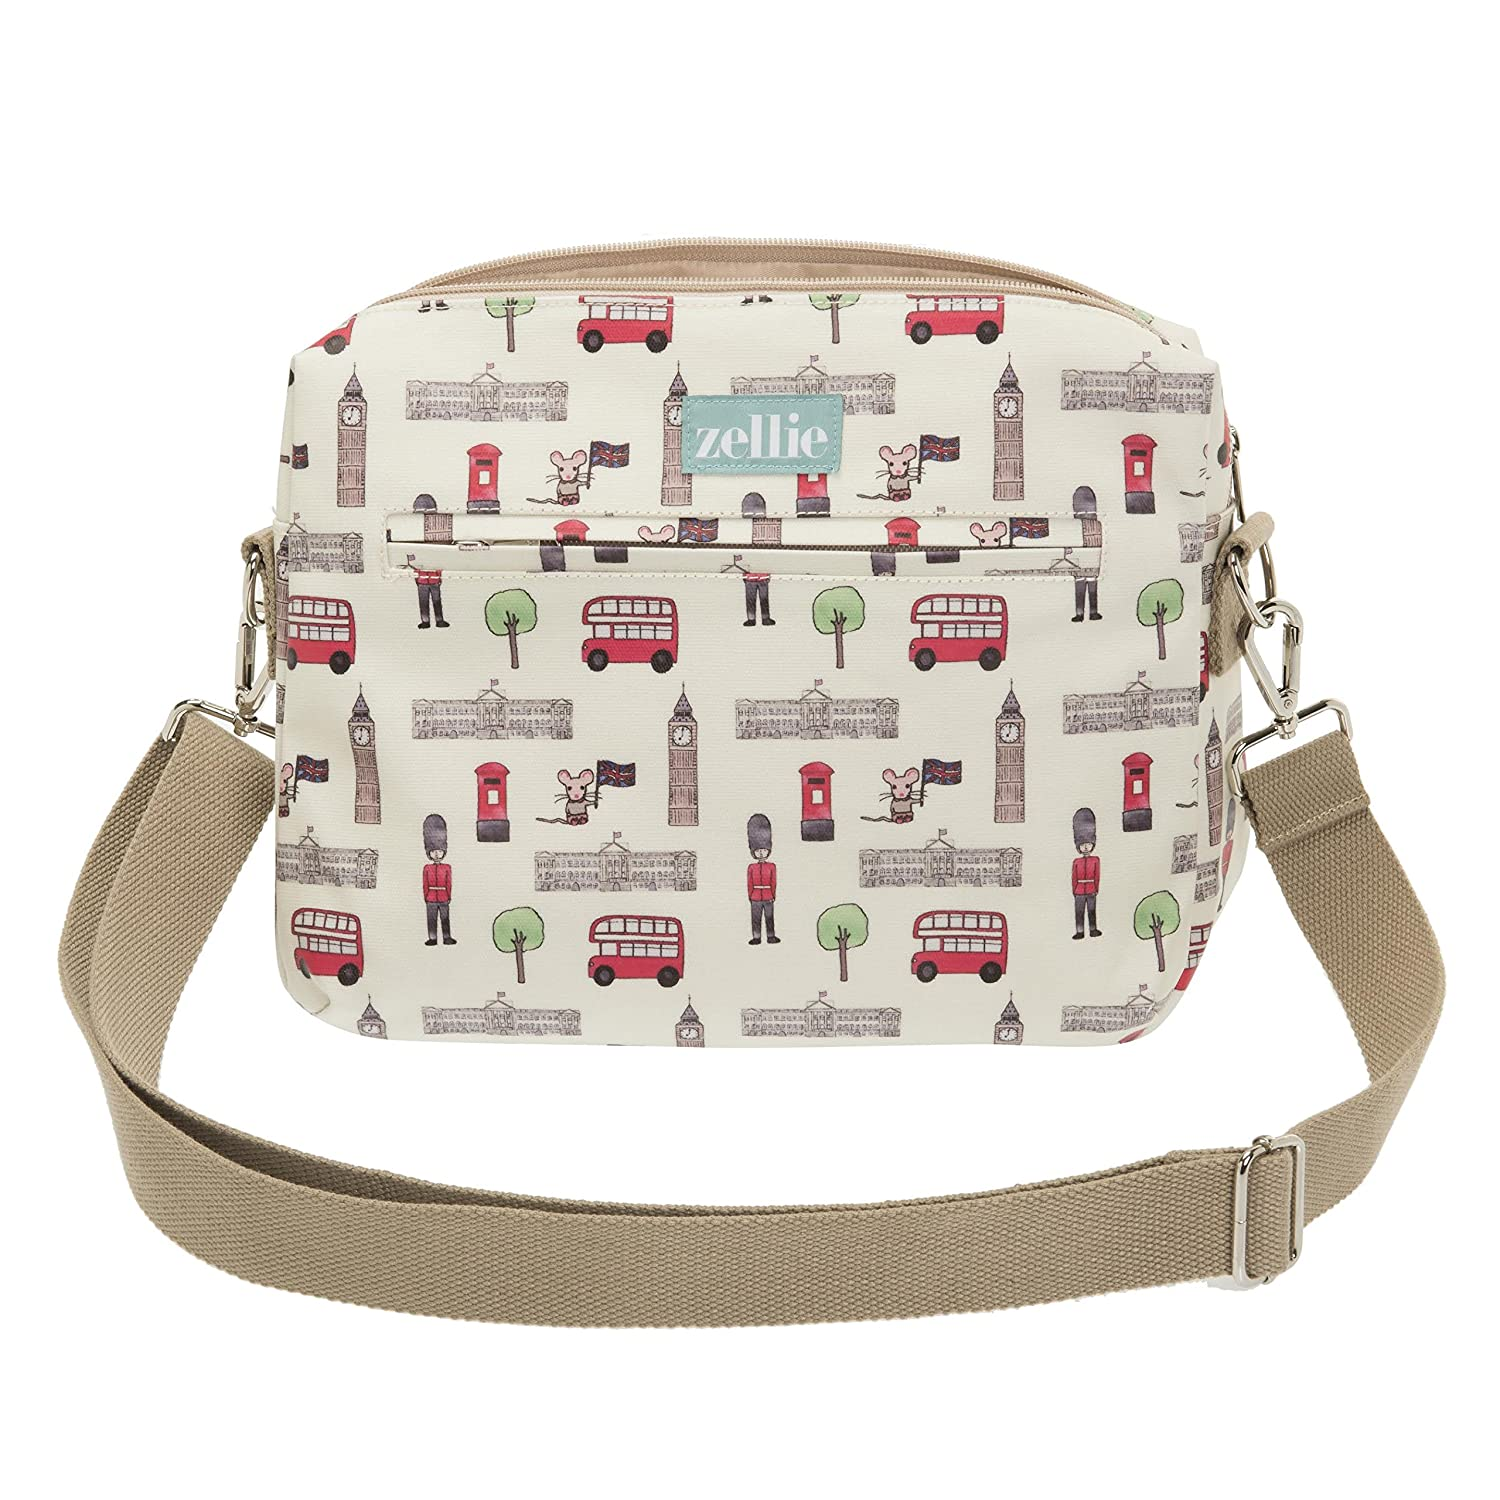 Includes Pram Straps and Travel Changing Mat Travel Nappy Pouch Toddler and Baby Travel Pouch Small Baby Changing Bag London Guards Design